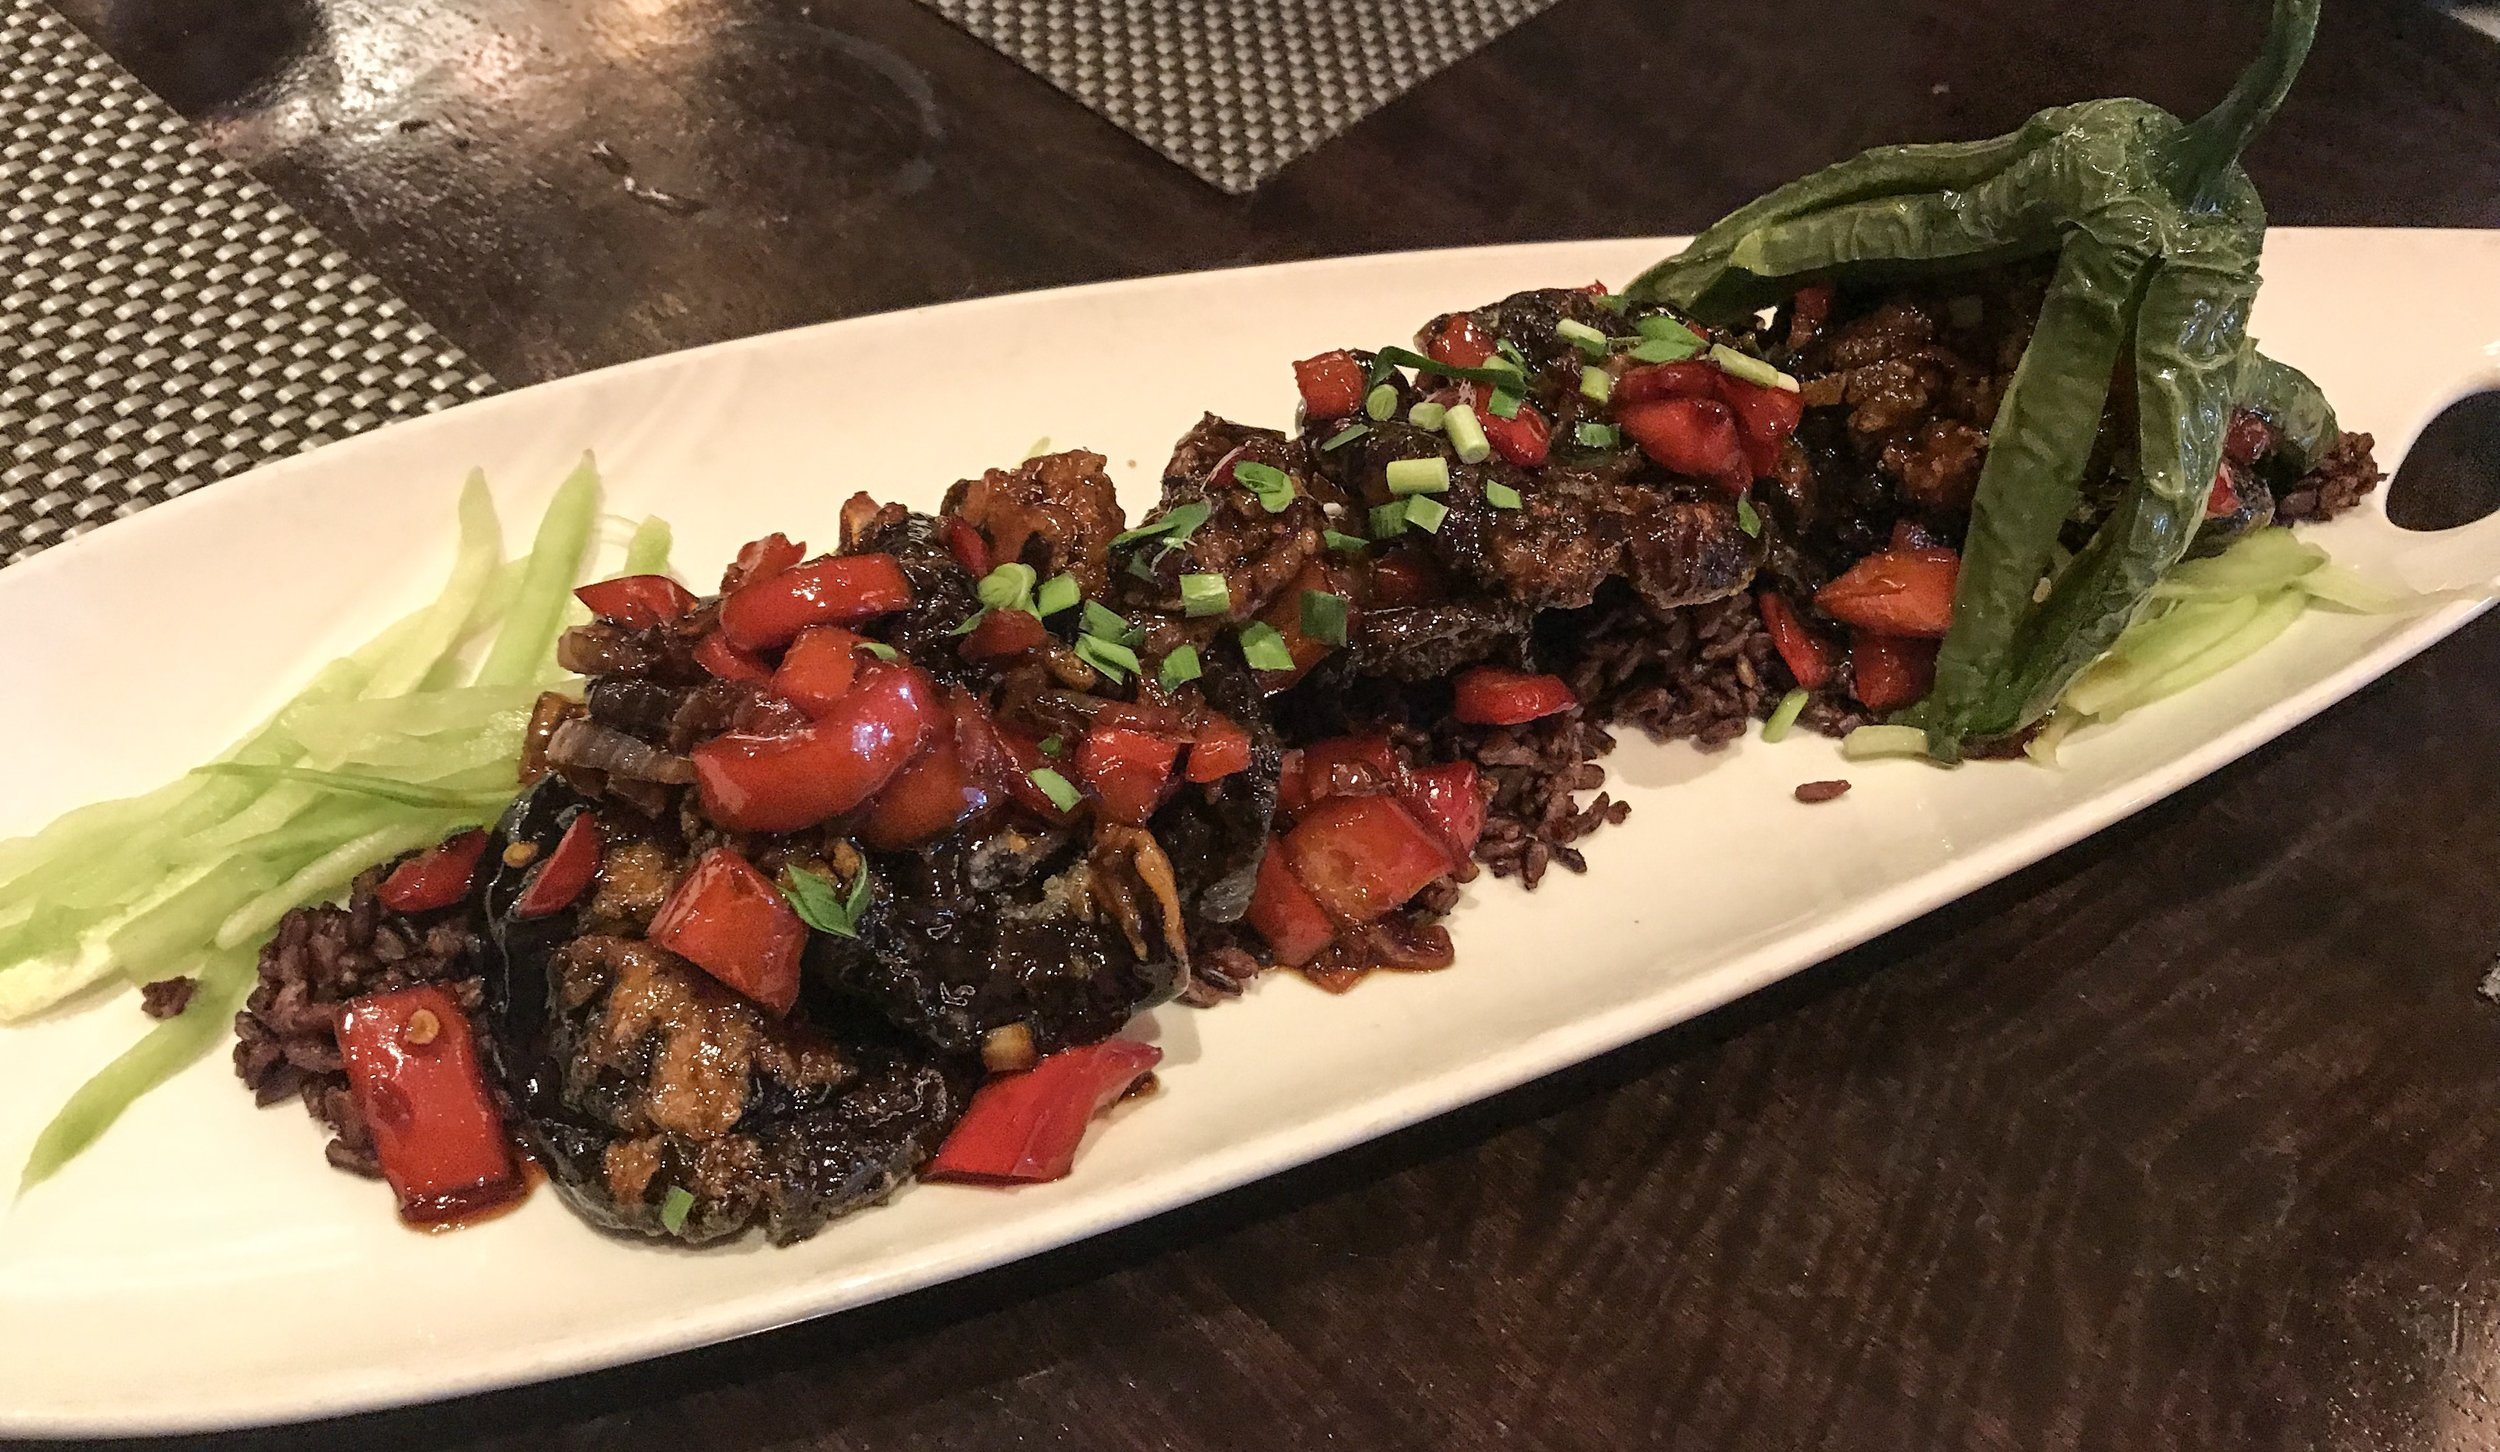 Vegan Calamari - which is actually mushroom wrapped in black rice and had a crispy texture - with red pepper / onion - pretty amazing !!! never had anything like this before. It was exceptional